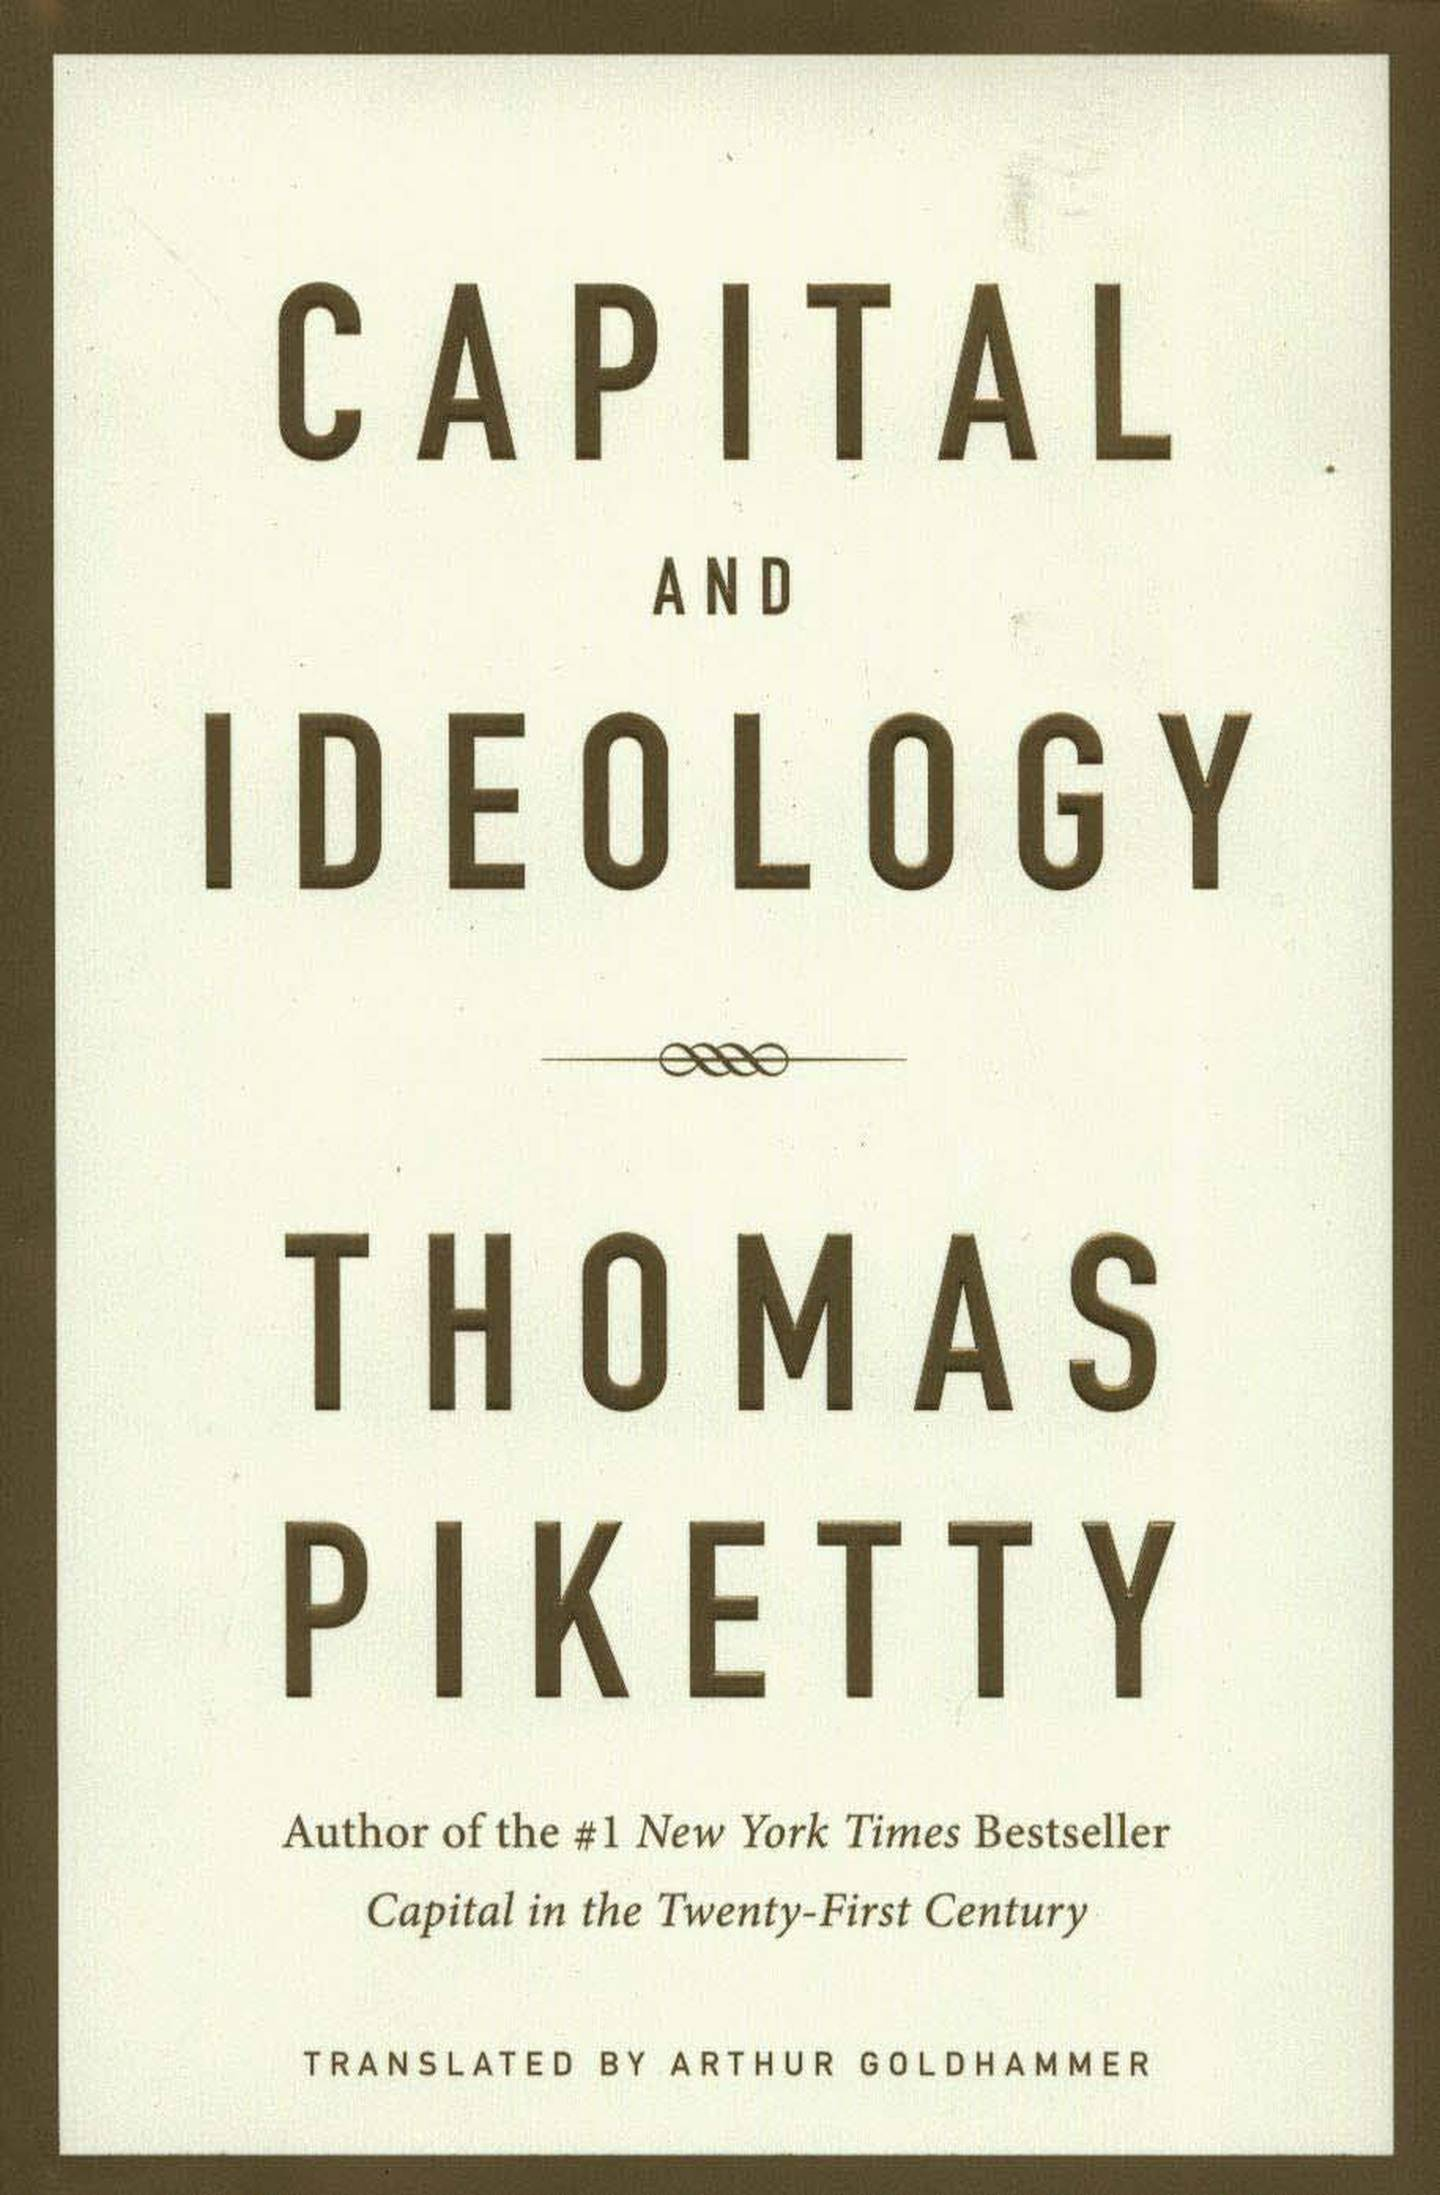 Capital and Ideology by Thomas Piketty, trabslated by Arthur Goldhammer. Courtesy Harvard University Press